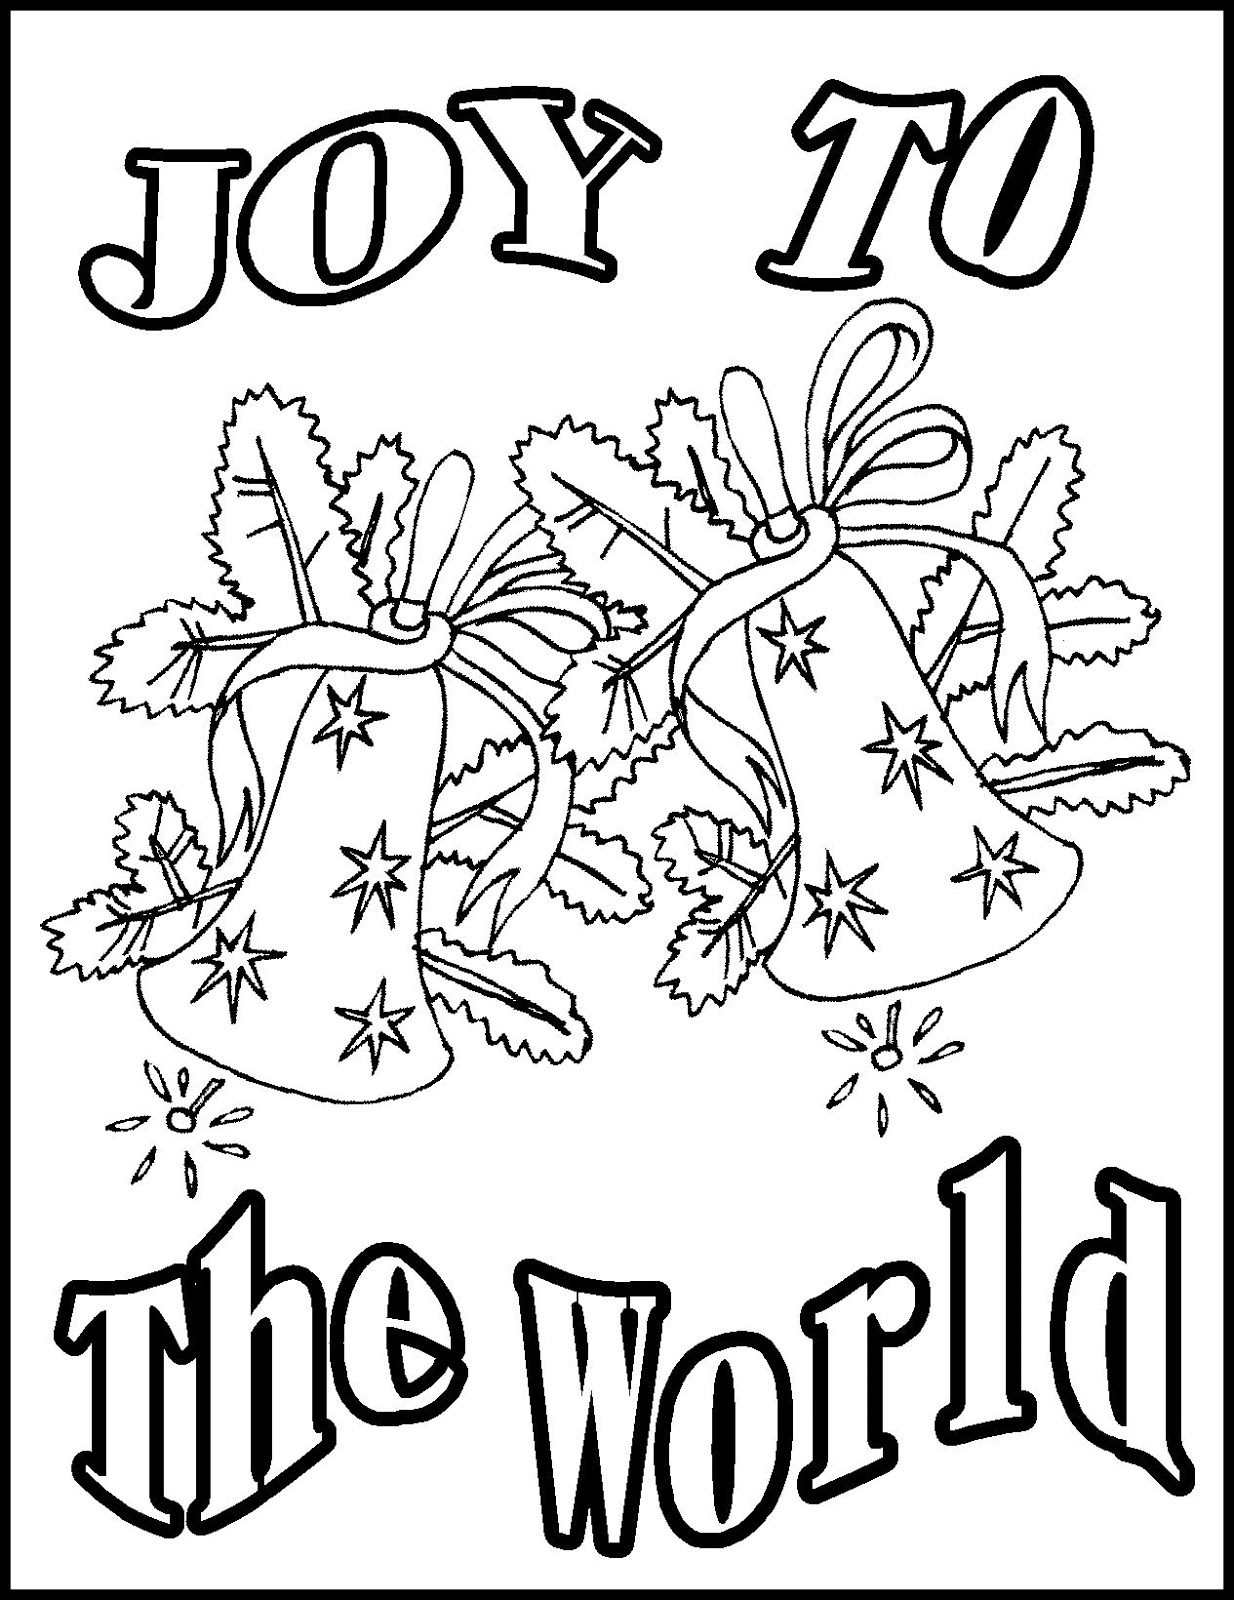 free christian christmas coloring pages printable christian christmas activities free nativity coloring christmas coloring christian free printable pages